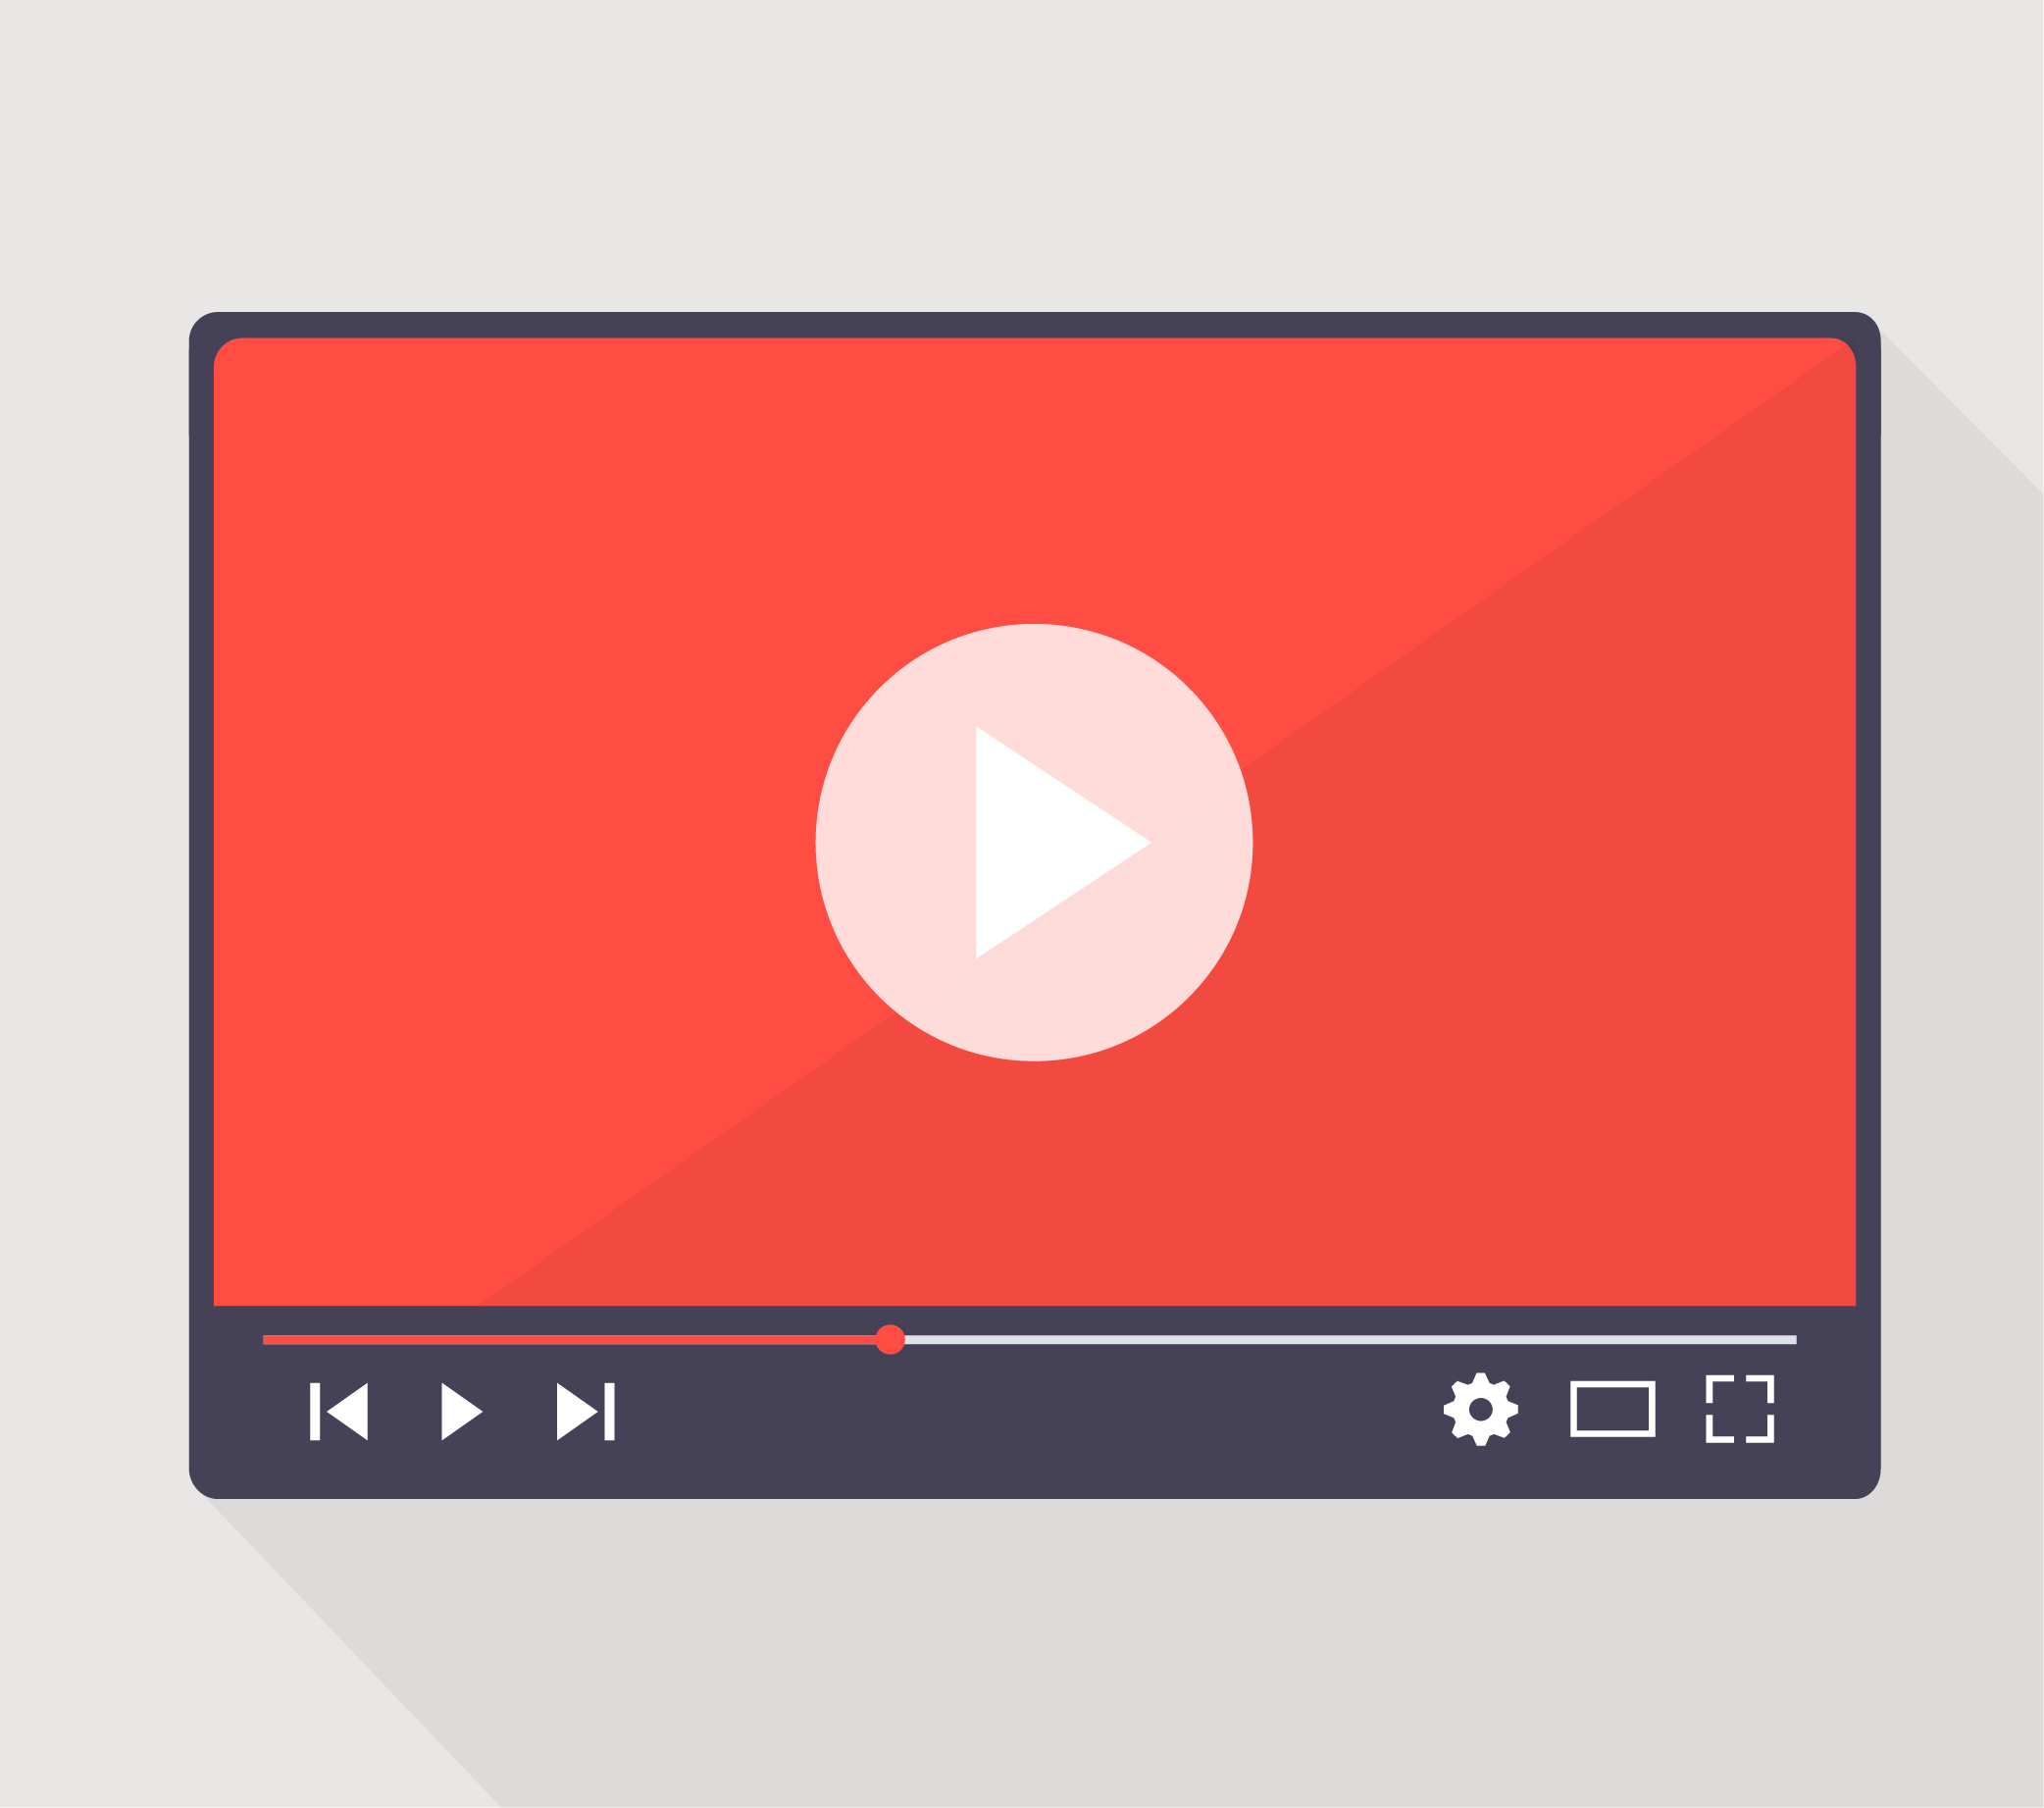 Lead Generation and Marketing Channels to Focus on - Video marketing